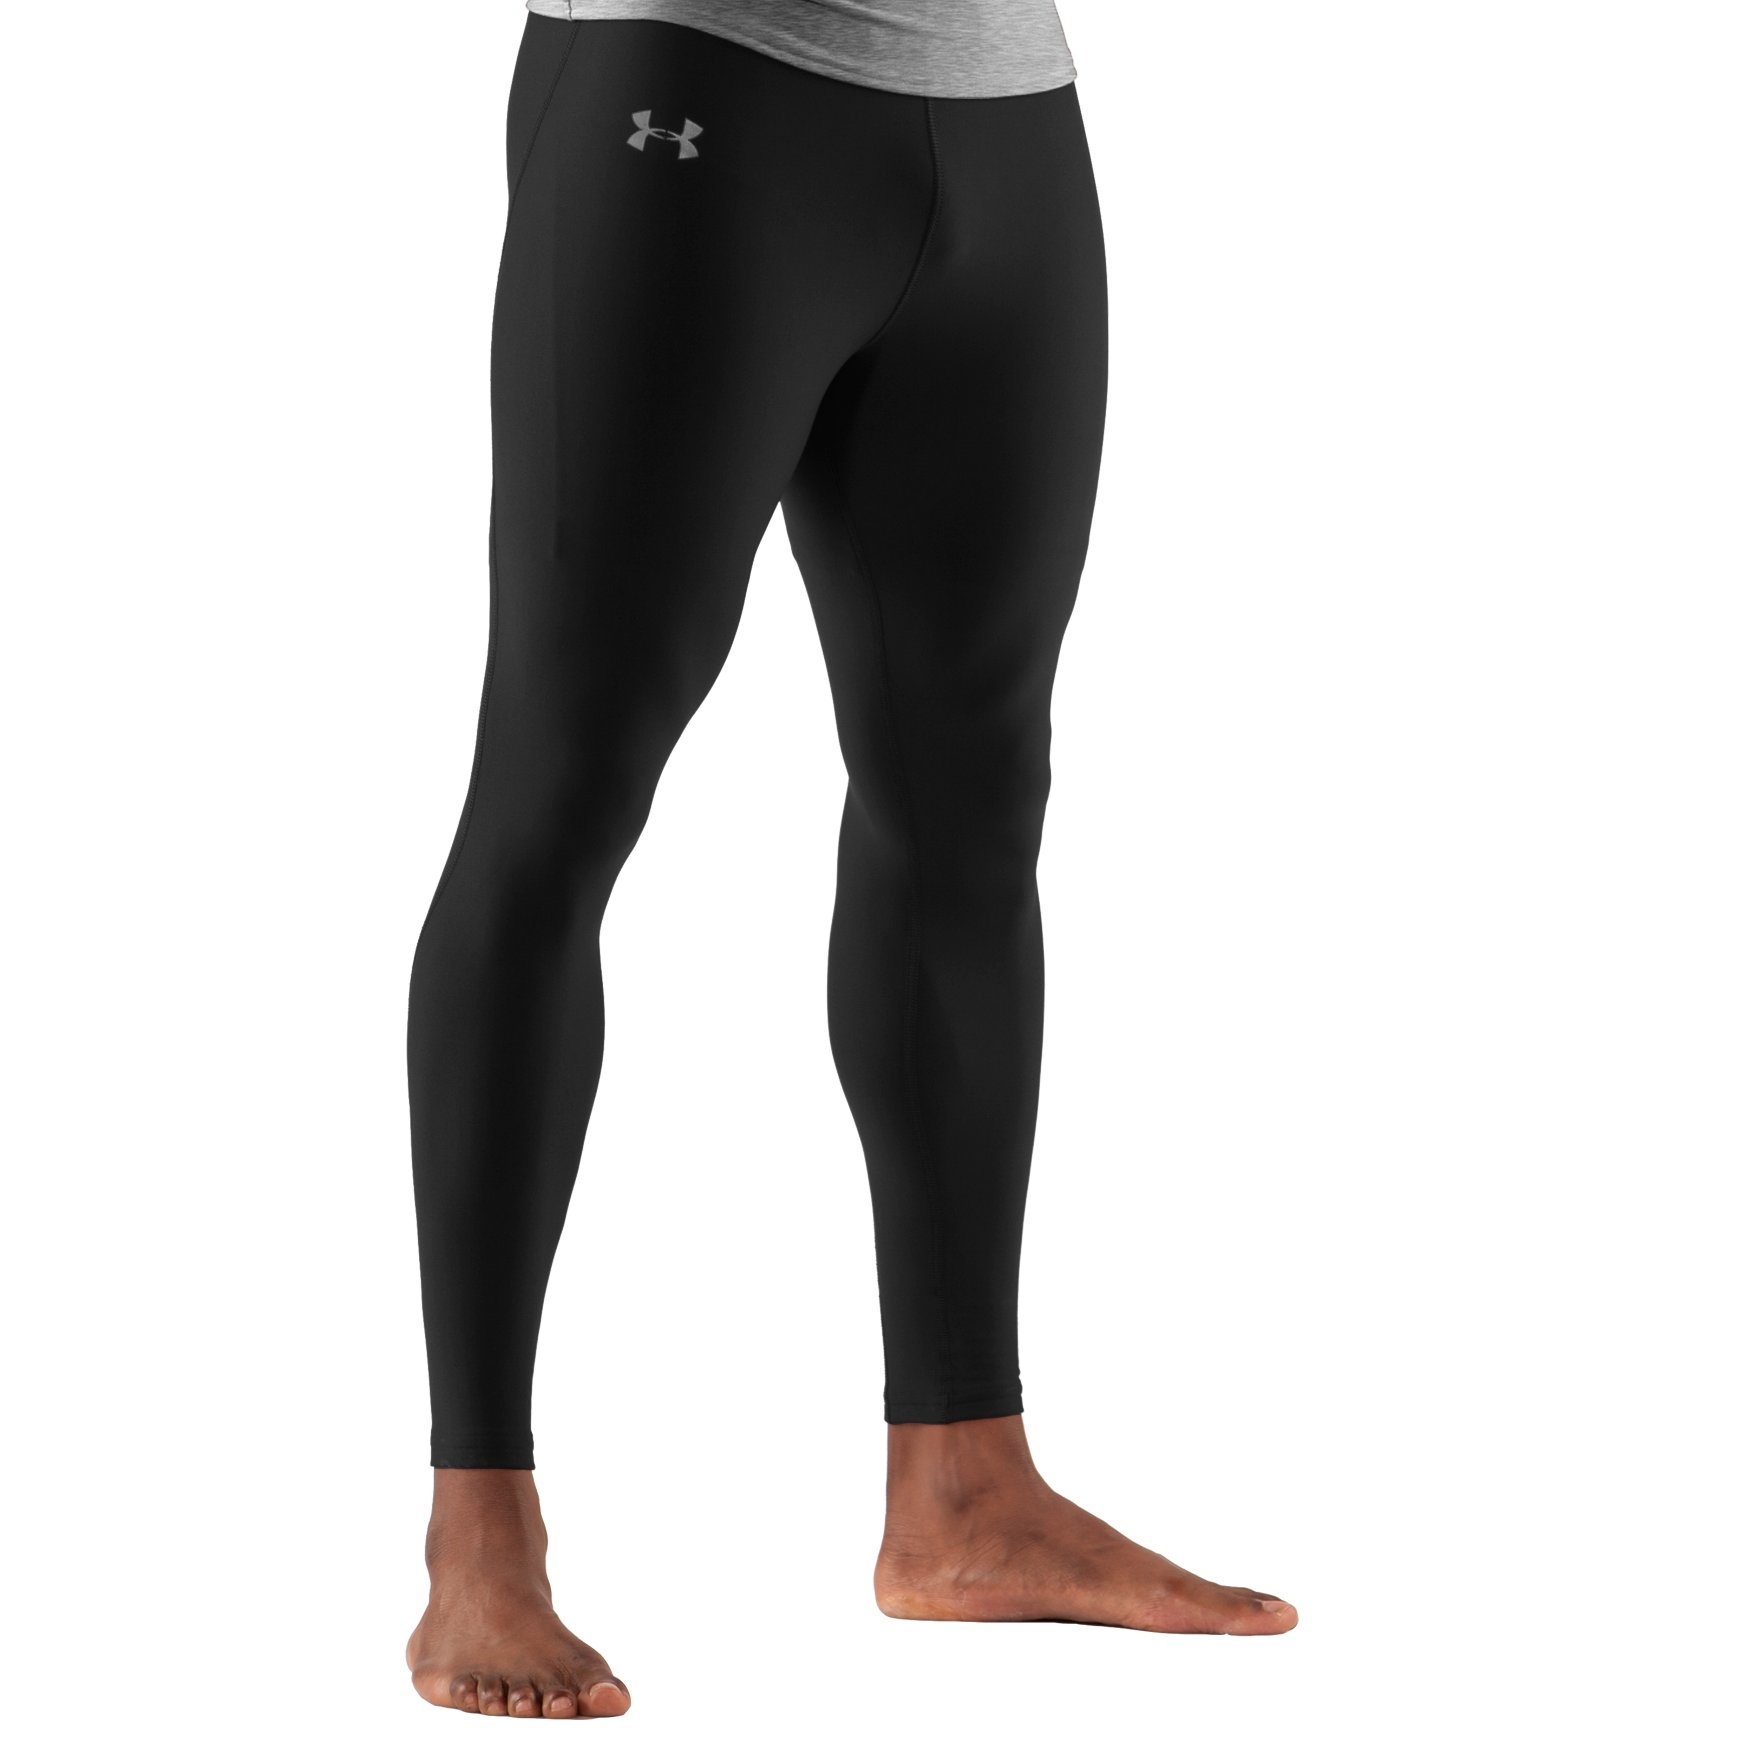 Find great deals on eBay for leggings men. Shop with confidence.